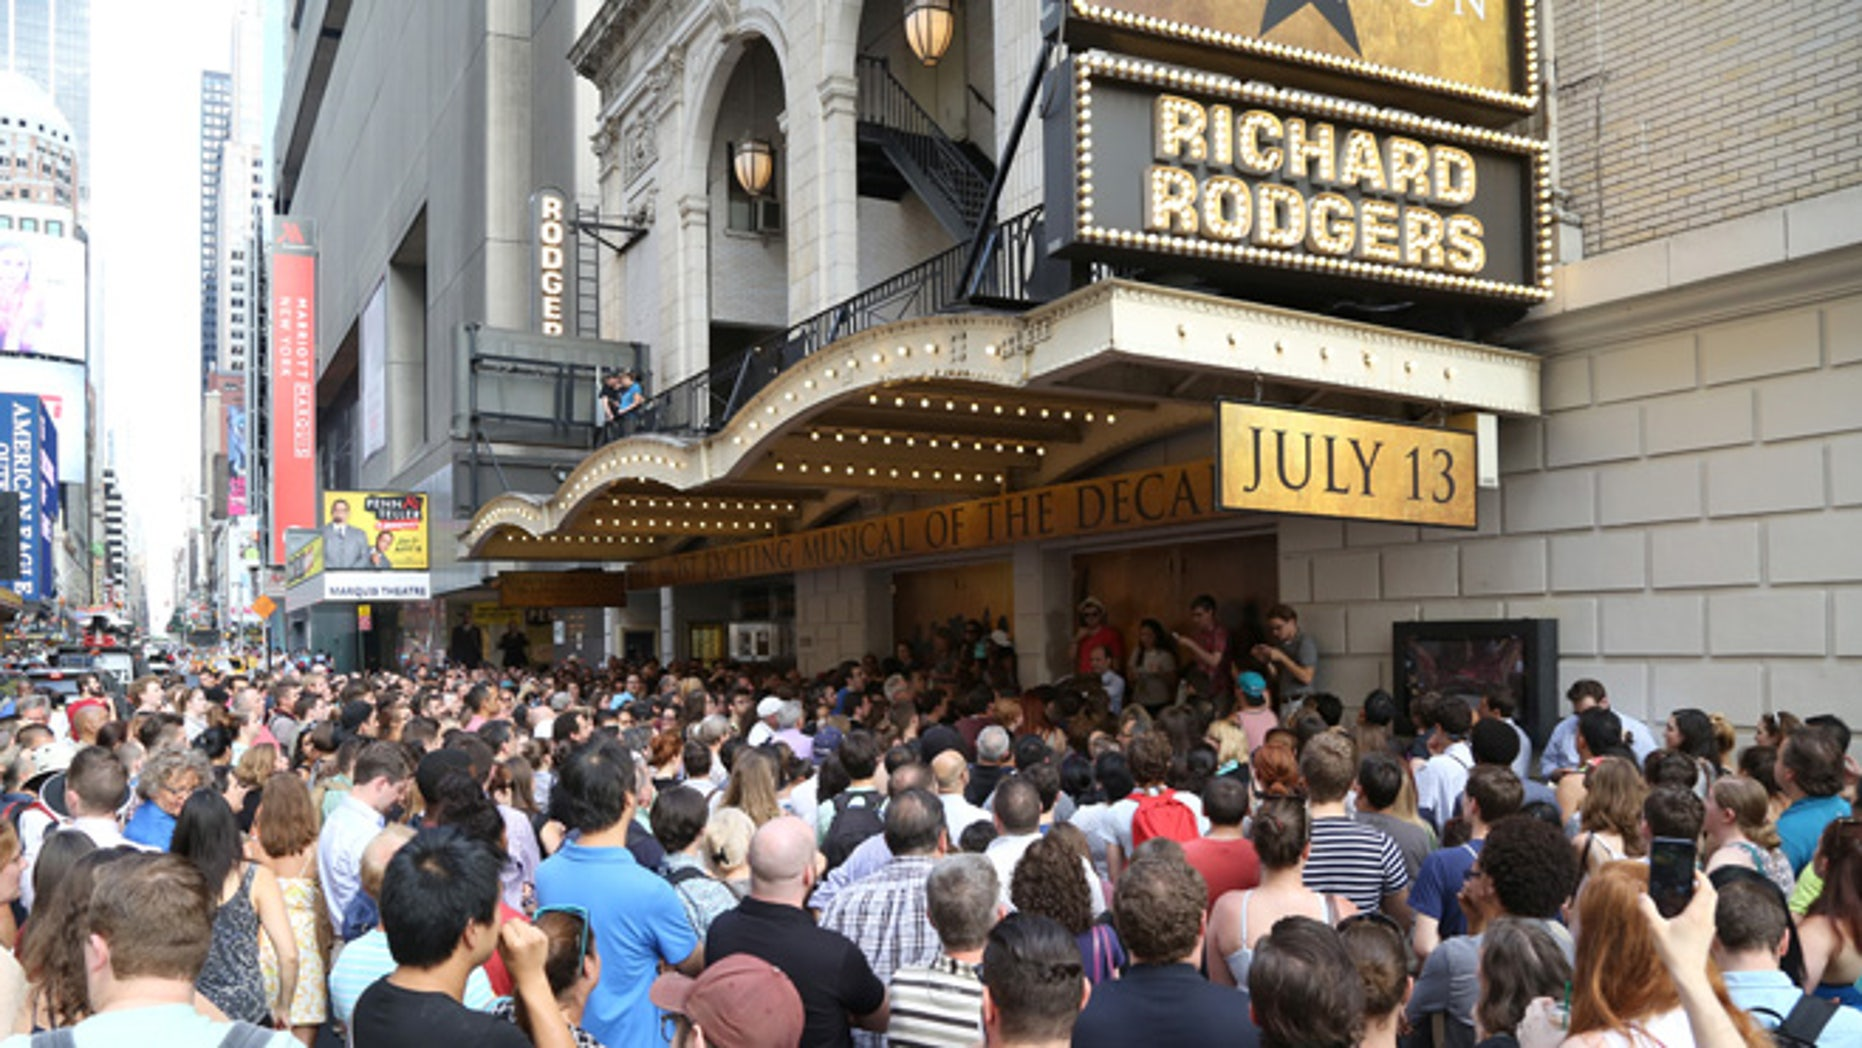 NEW YORK, NY - JULY 13:  Huge crowds line up for the Lottery to win $10 front-row seats to see the new Broadway musical Hamilton. The musical about Founding Father Alexander Hamilton, whose face is depicted on the $10 bill, had their first preview at the Richard Rodgers Theatre on July 13, 2015 in New York City.  (Photo by Walter McBride/Getty Images)